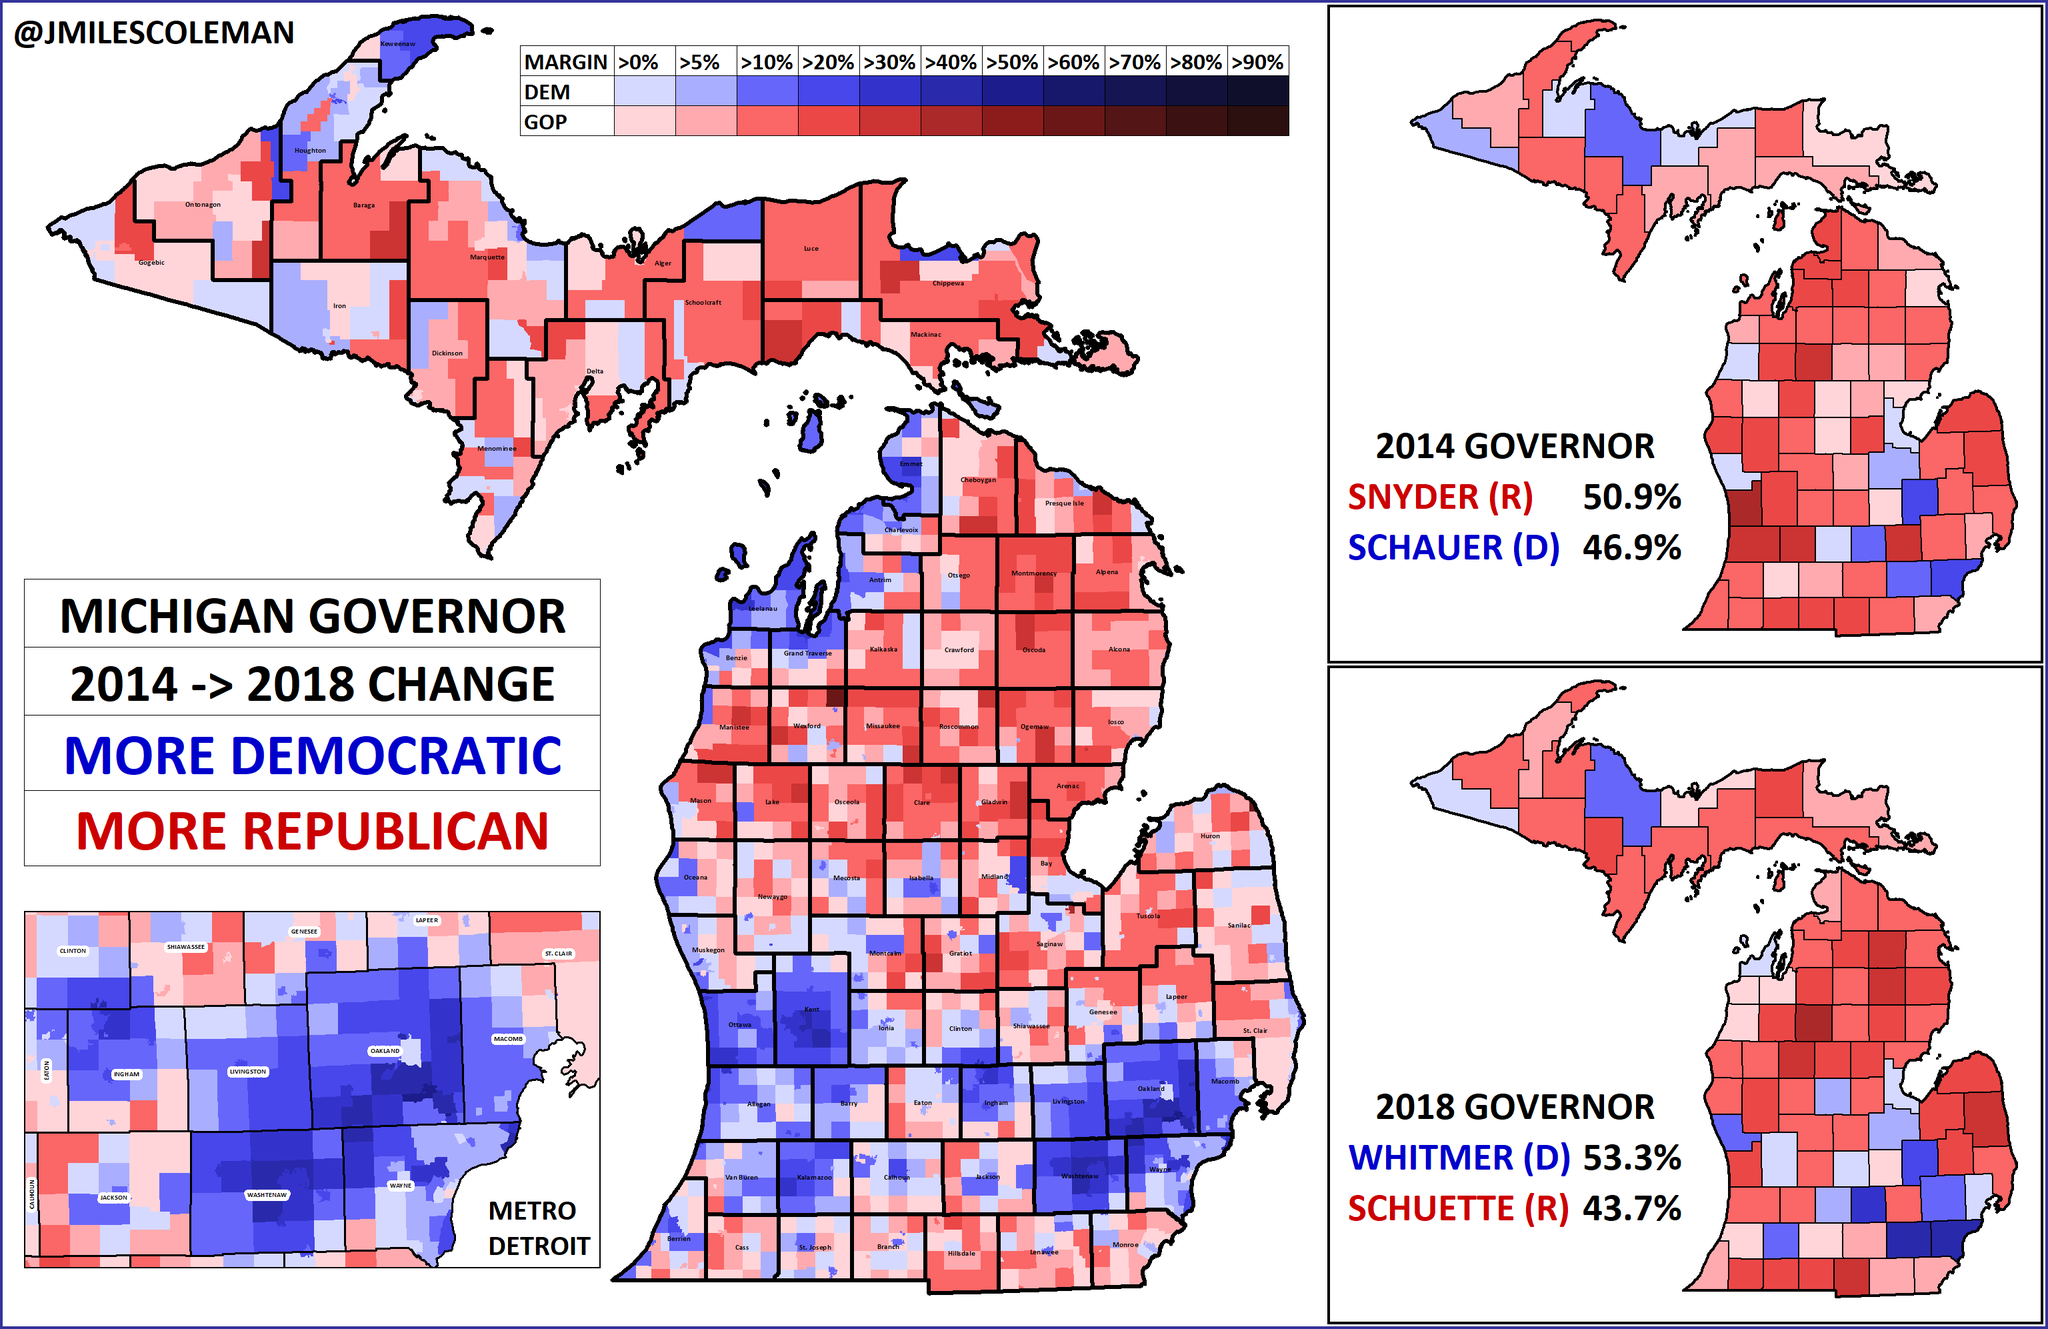 Last year, Democrats flipped the Michigan Governorship with @gretchenwhitmer. She was elected by nearly 10%, after Gov. Rick Snyder (R) won by 4% in 2014. Her win was powered by gains in southeastern & western metros, while the north mostly moved the other way. #migov #mipol https://t.co/CGIik8wl4r